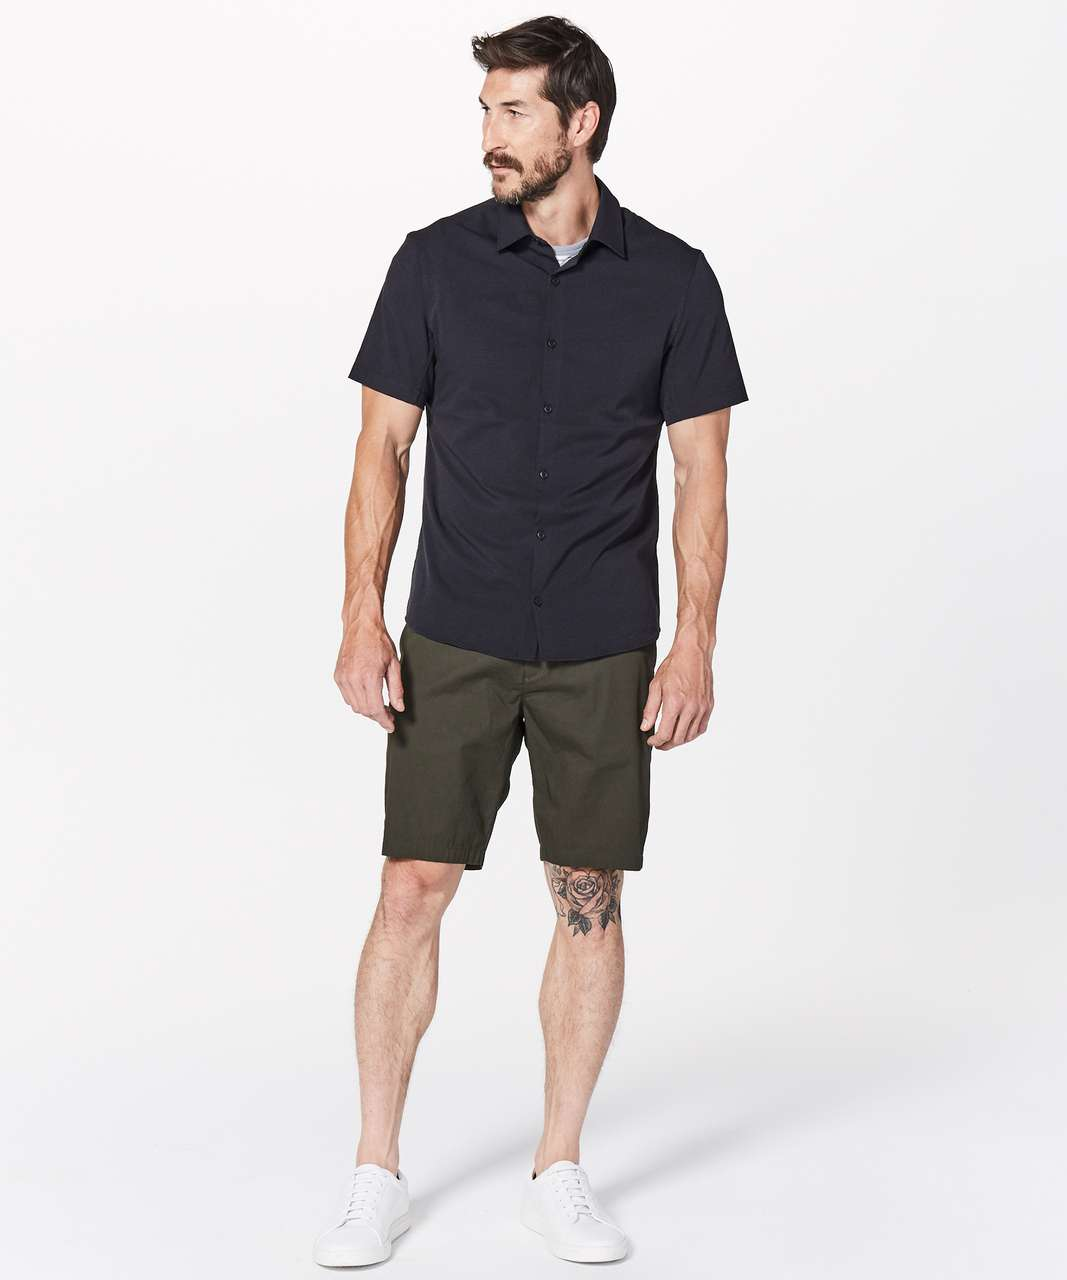 Lululemon Airing Easy Short Sleeve Buttondown - Black